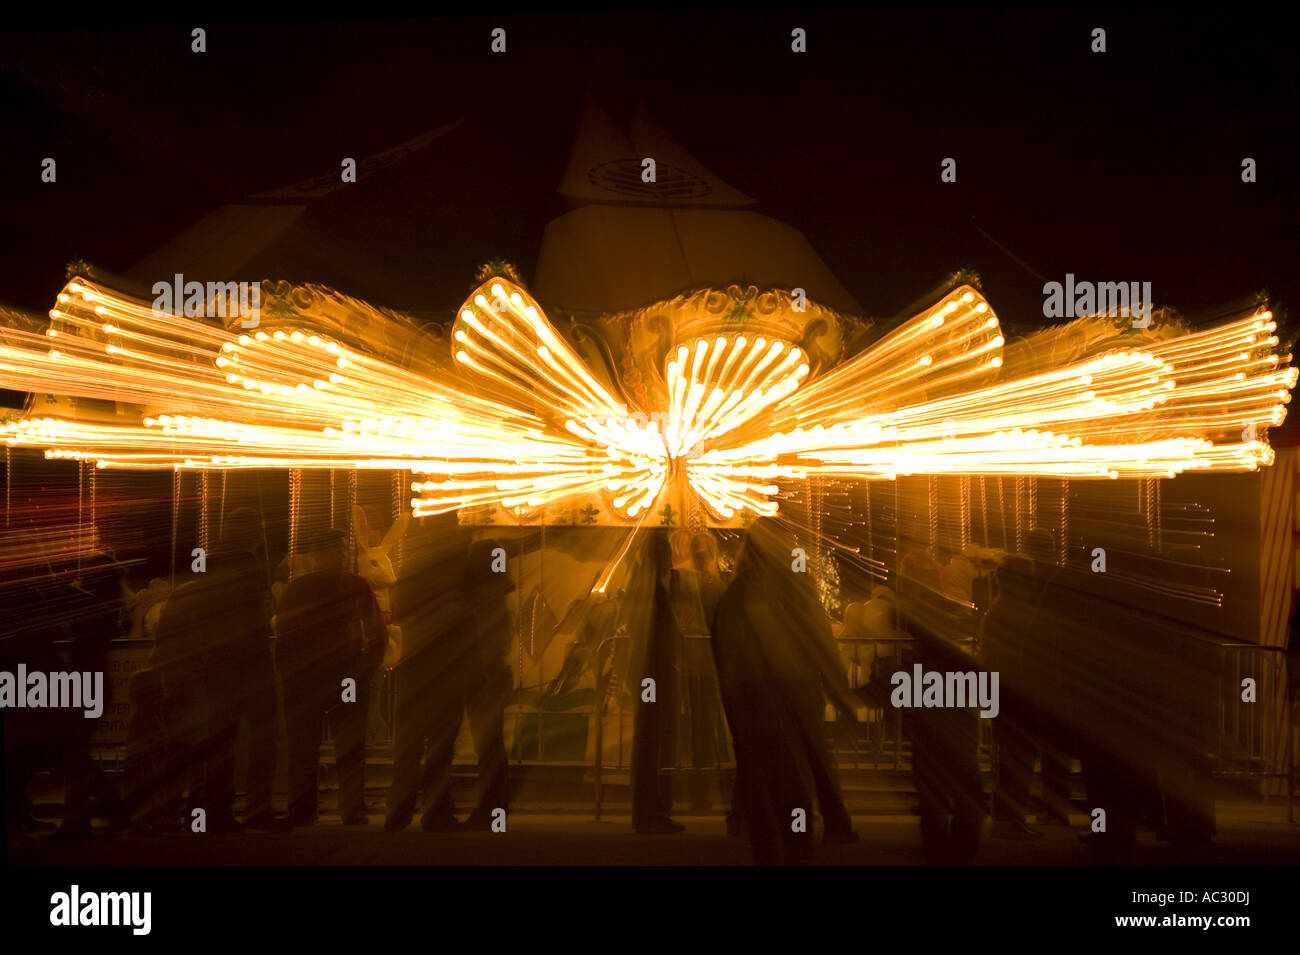 Merry-go-round abstraction - Stock Image